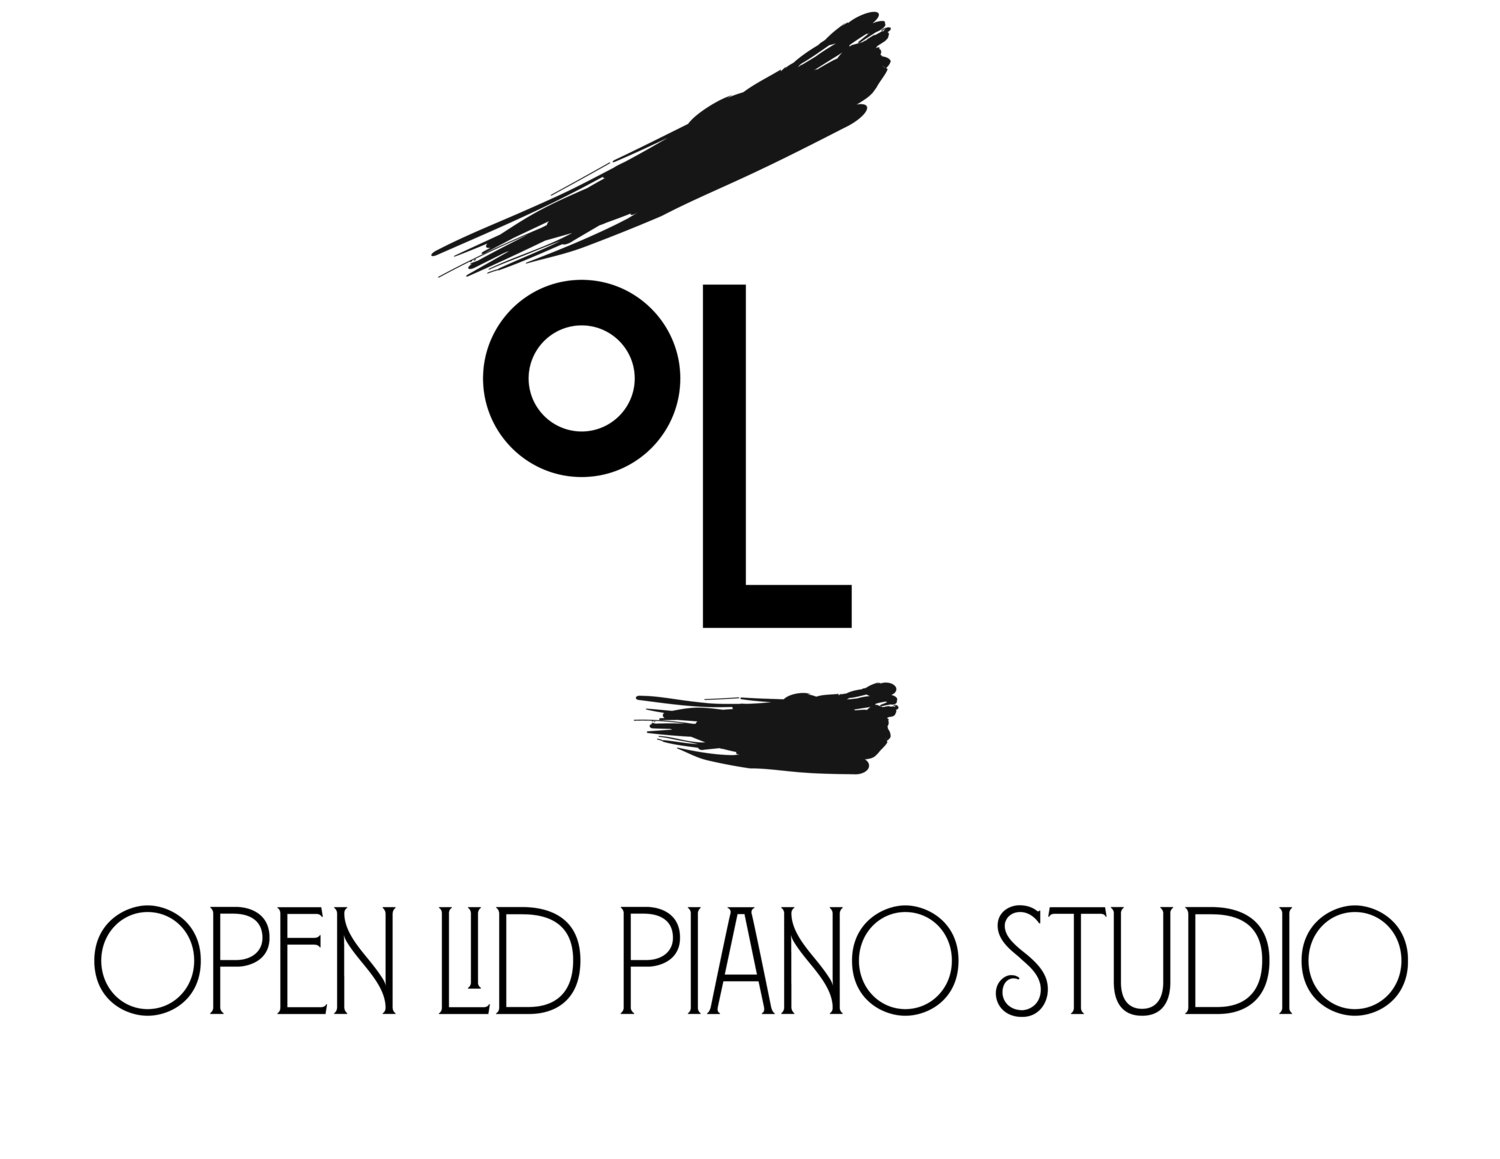 Open Lid Piano Studio